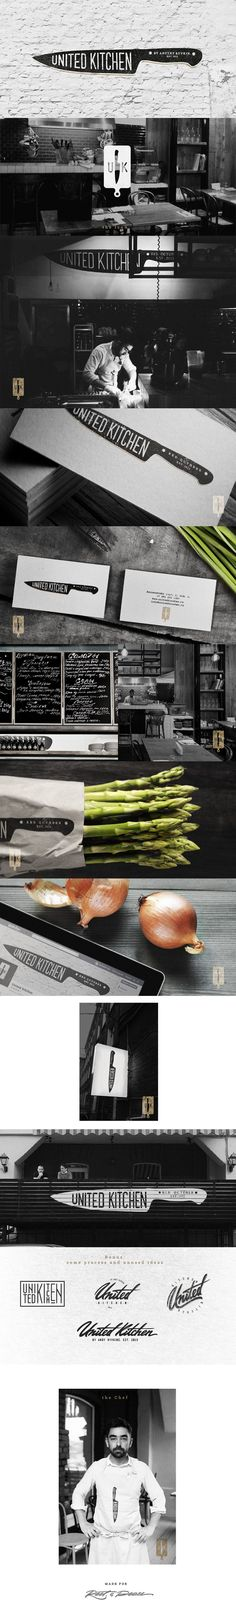 pinterest.com/fra411 #visual #identity - United Kitchen, Identity © Dmitry Gerais